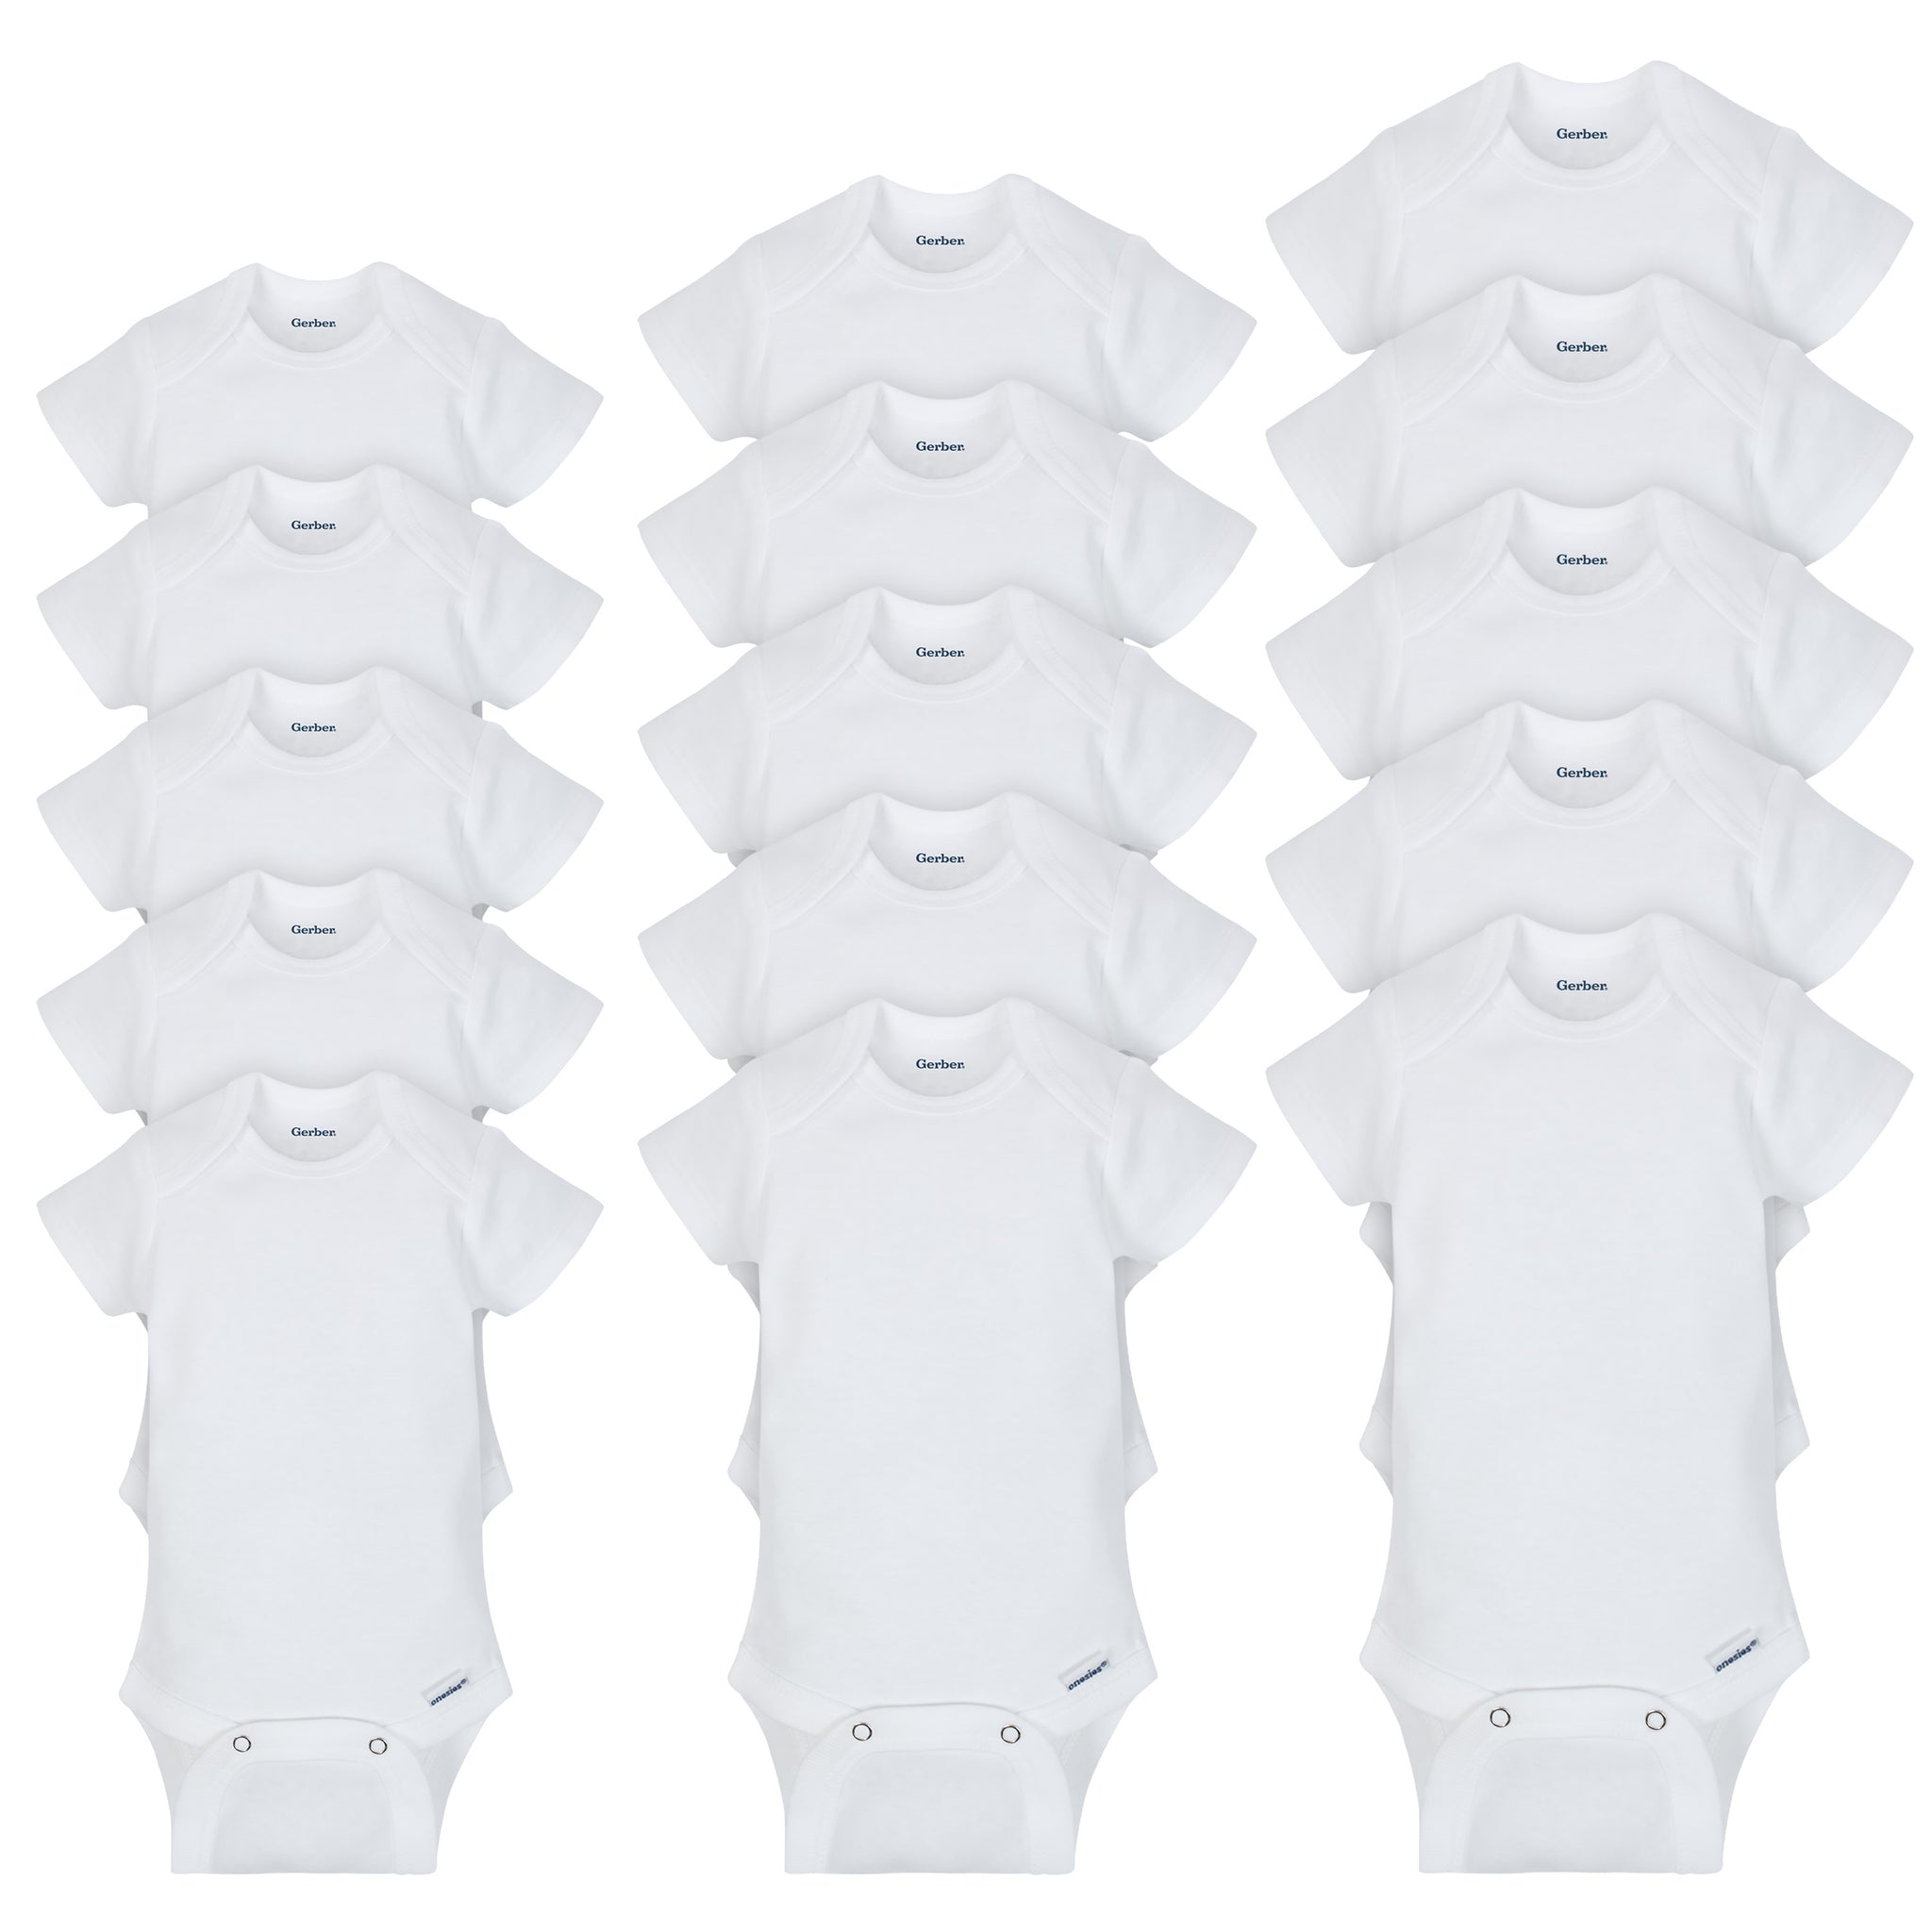 15-Pack Grow-With-Me White Onesies® Brand Short Sleeve Bodysuit Set-Gerber Childrenswear Wholesale